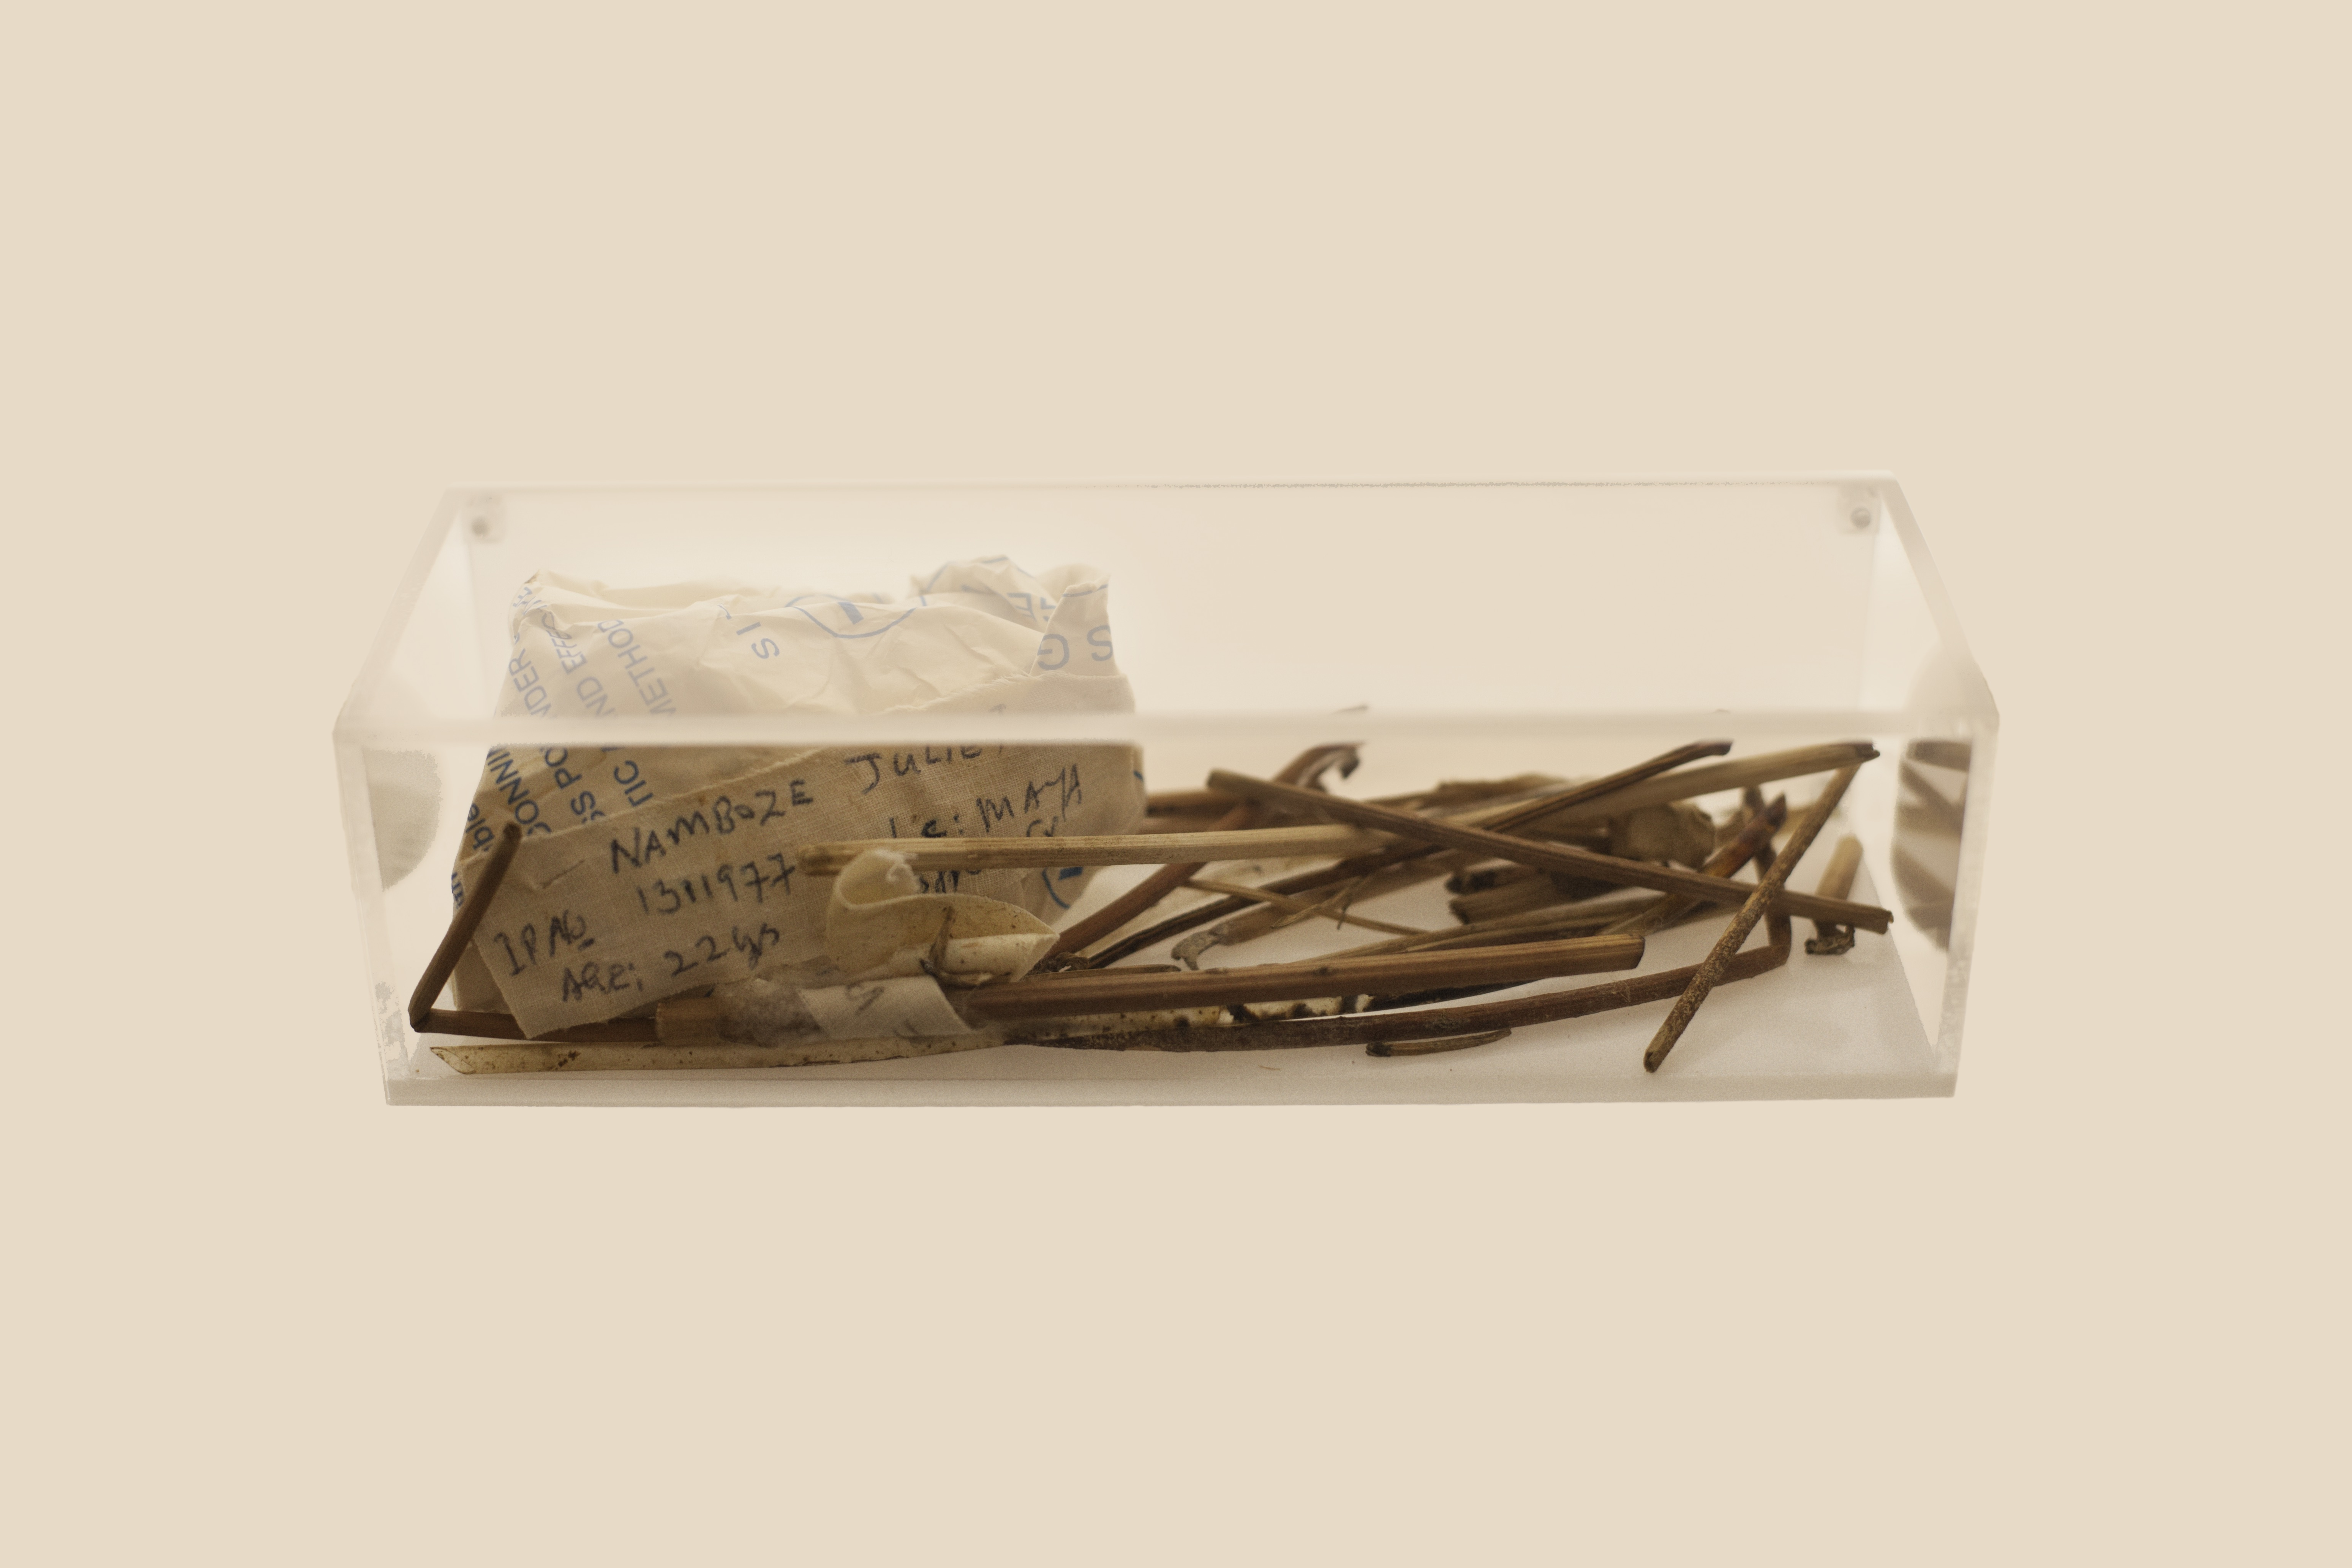 Artefacts used during an illegal abortion in Uganda, 2002.